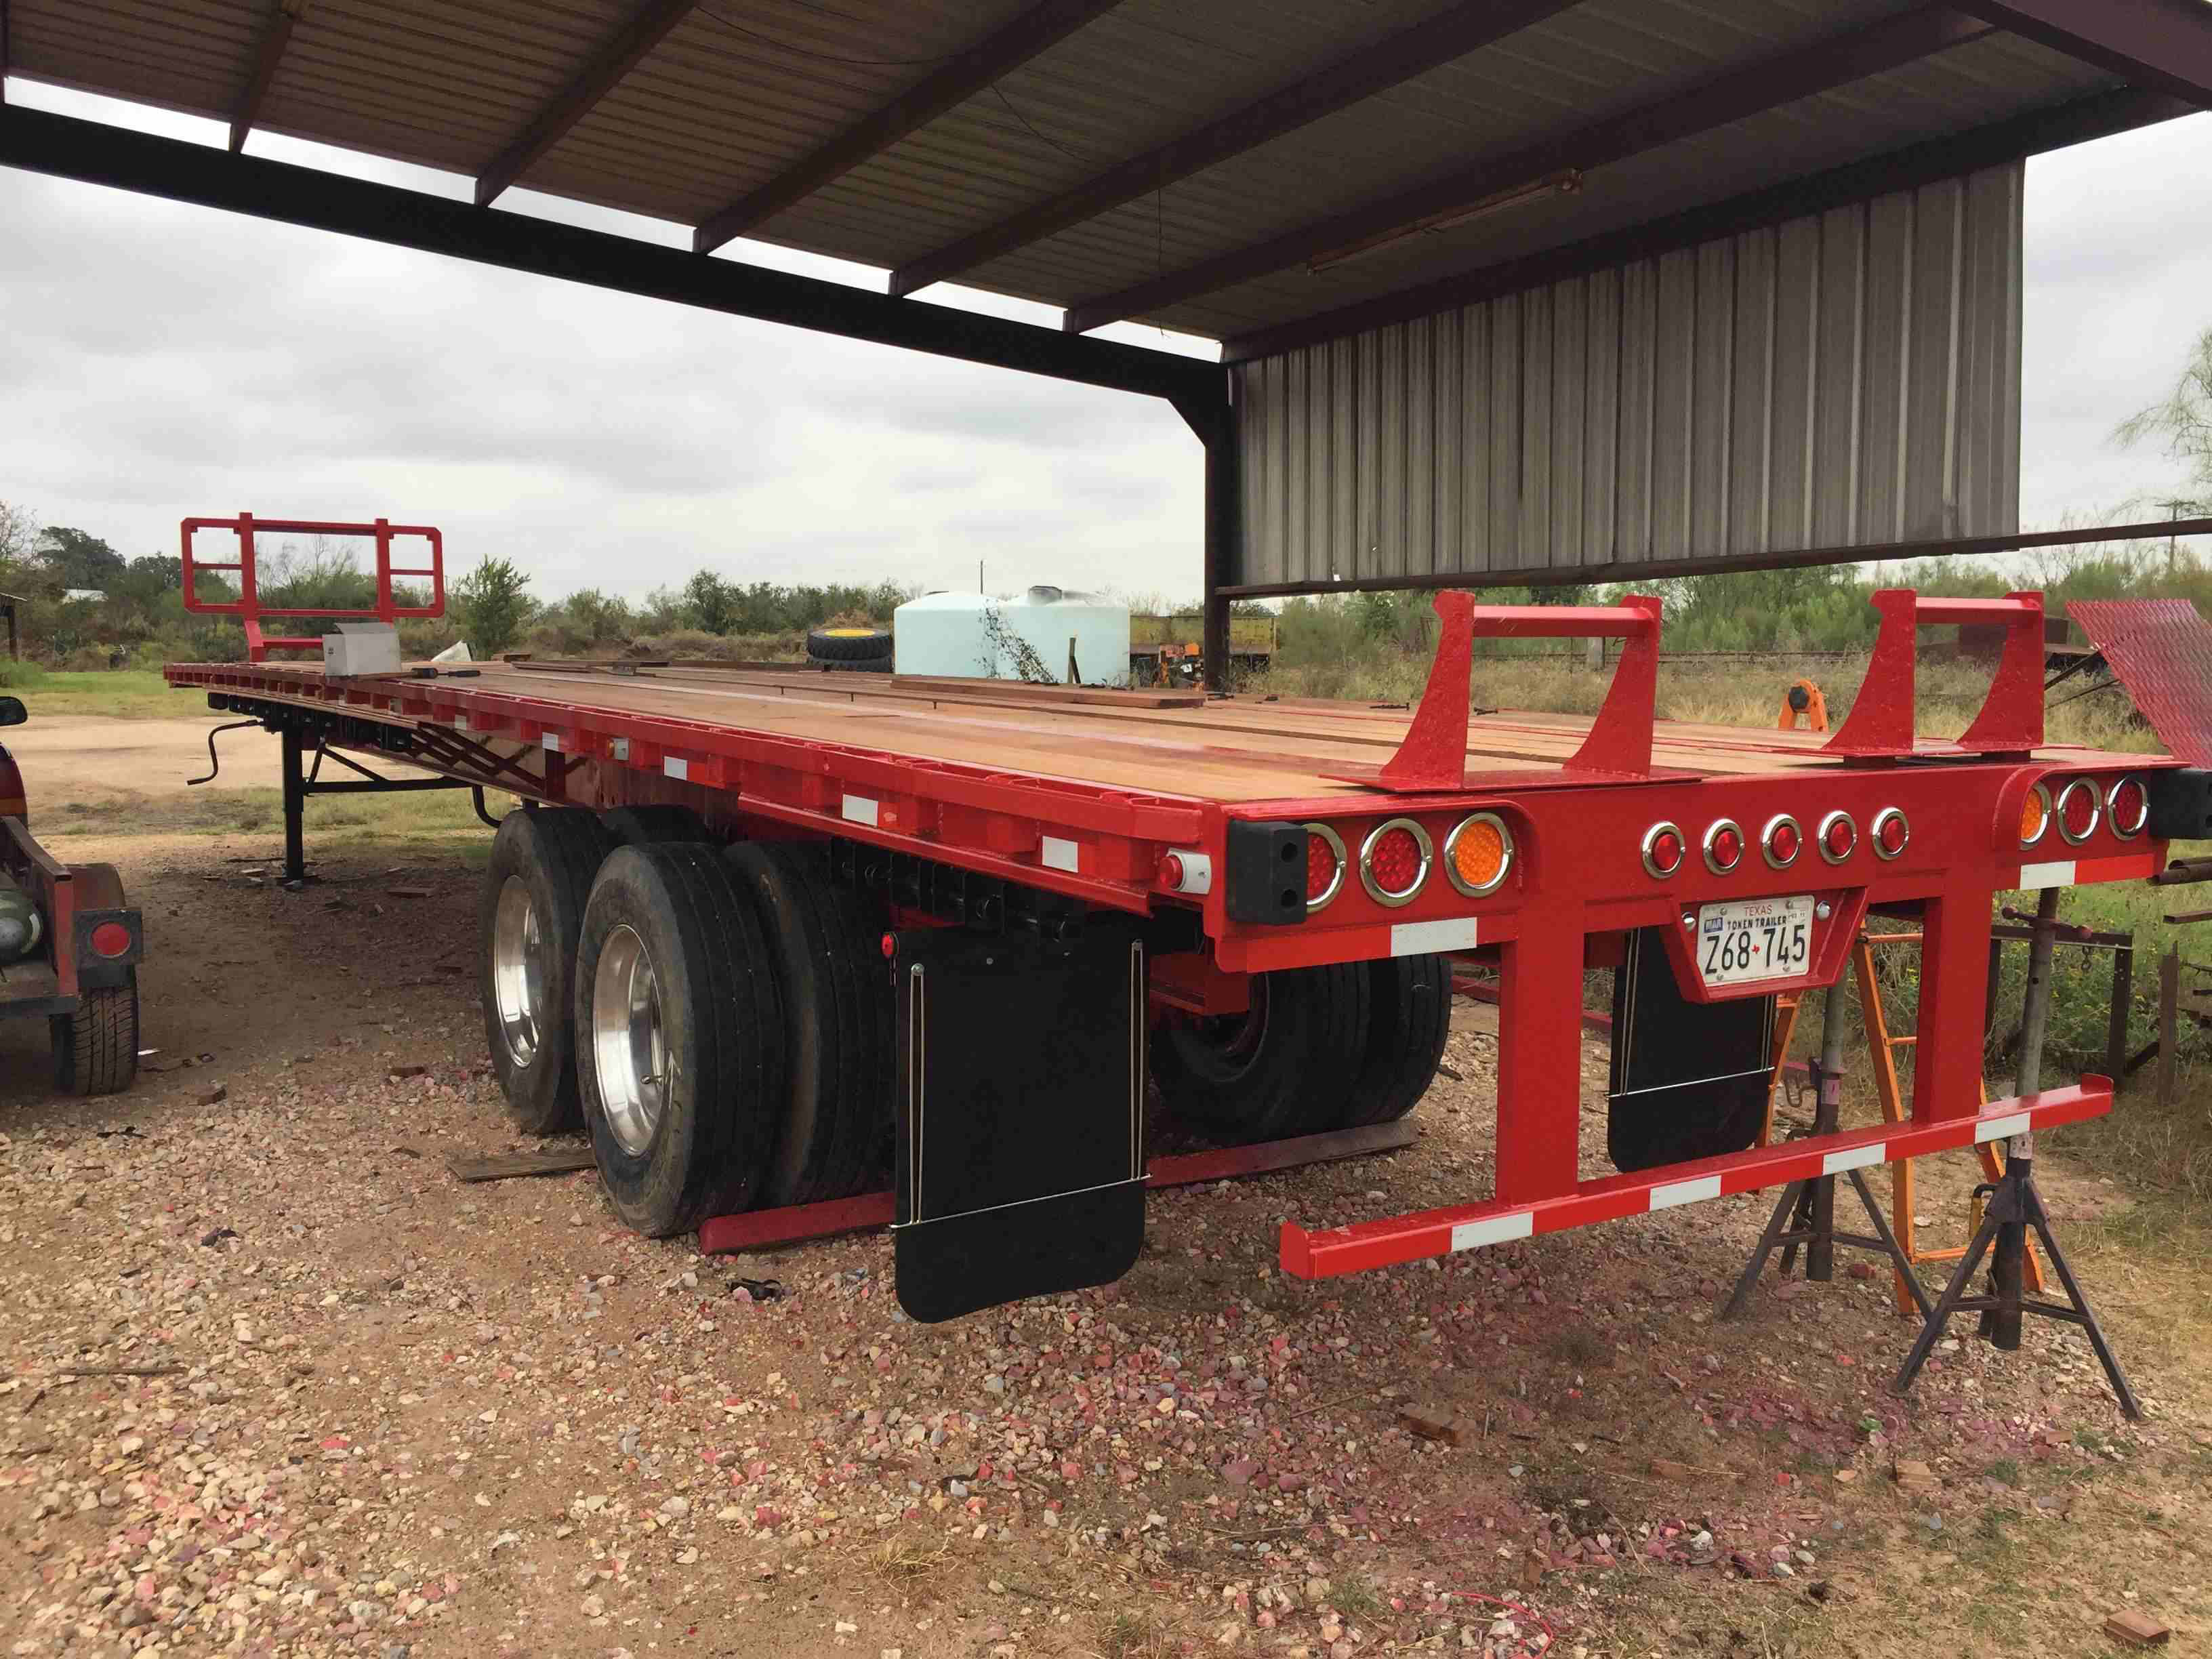 What does it cost to rebuild and extend a 1986 48-foot Trailmobile flatbed?